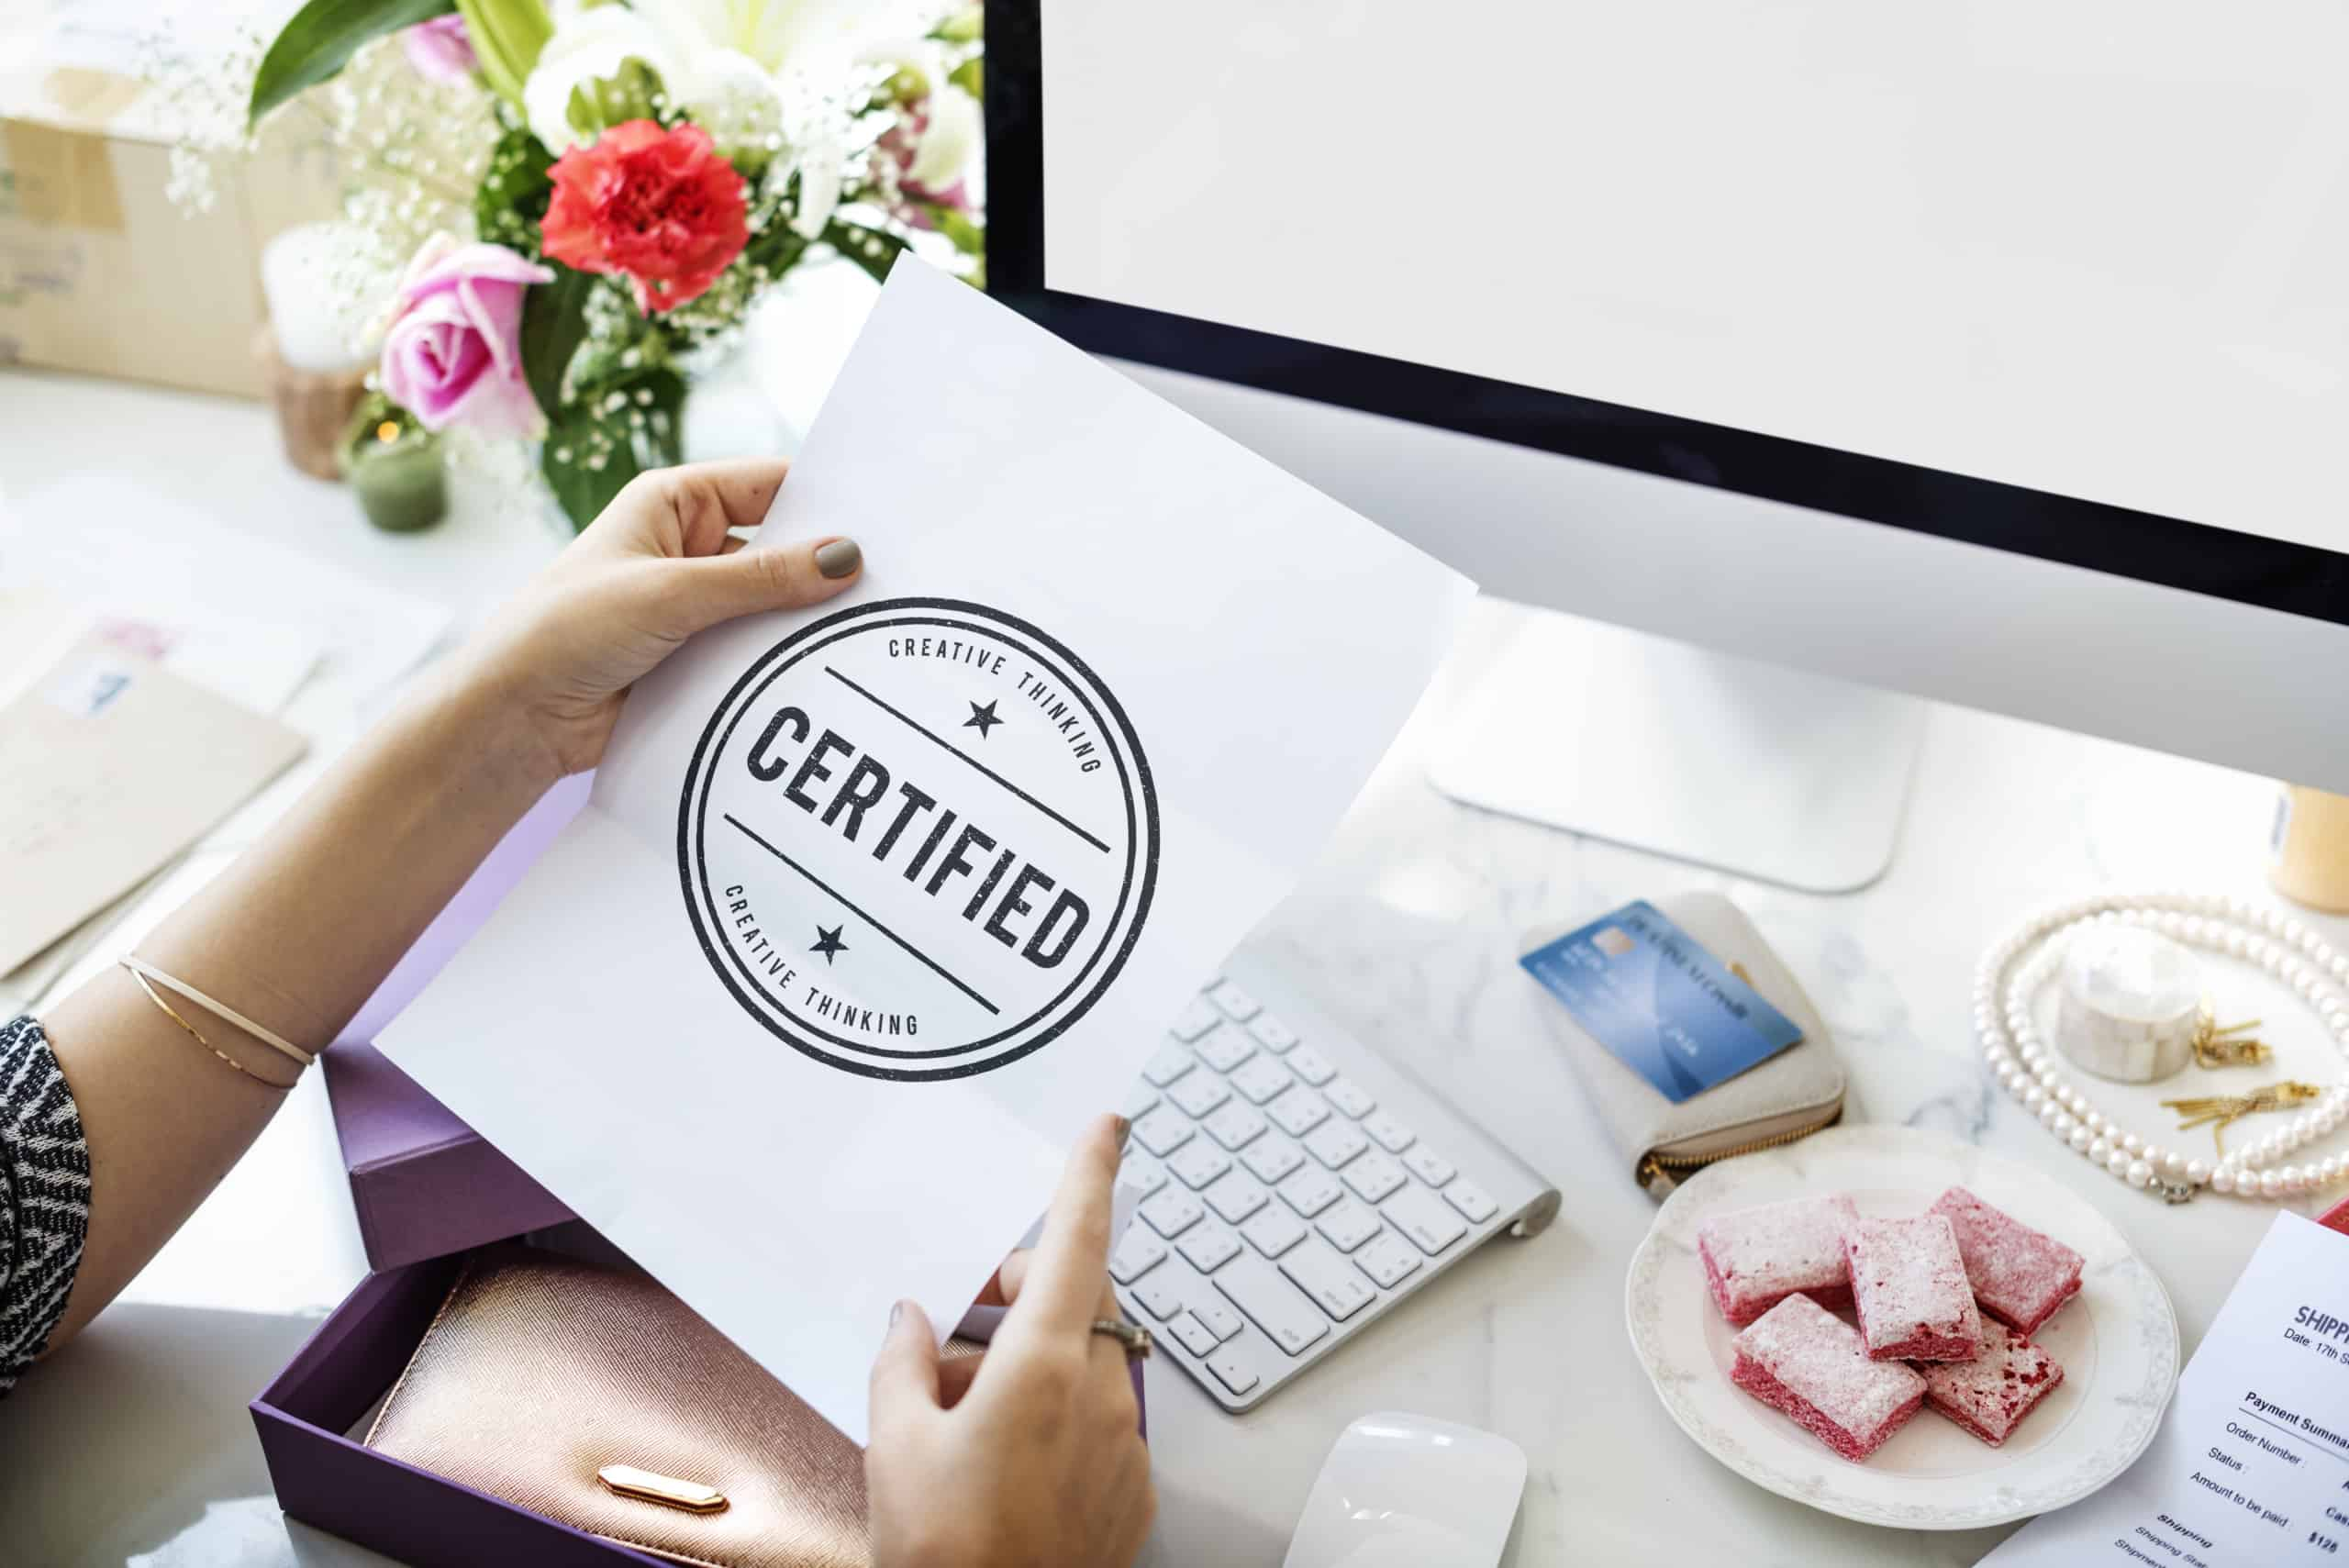 Is A Google Certified SEO Consultant Any Better Than An Uncertified One?